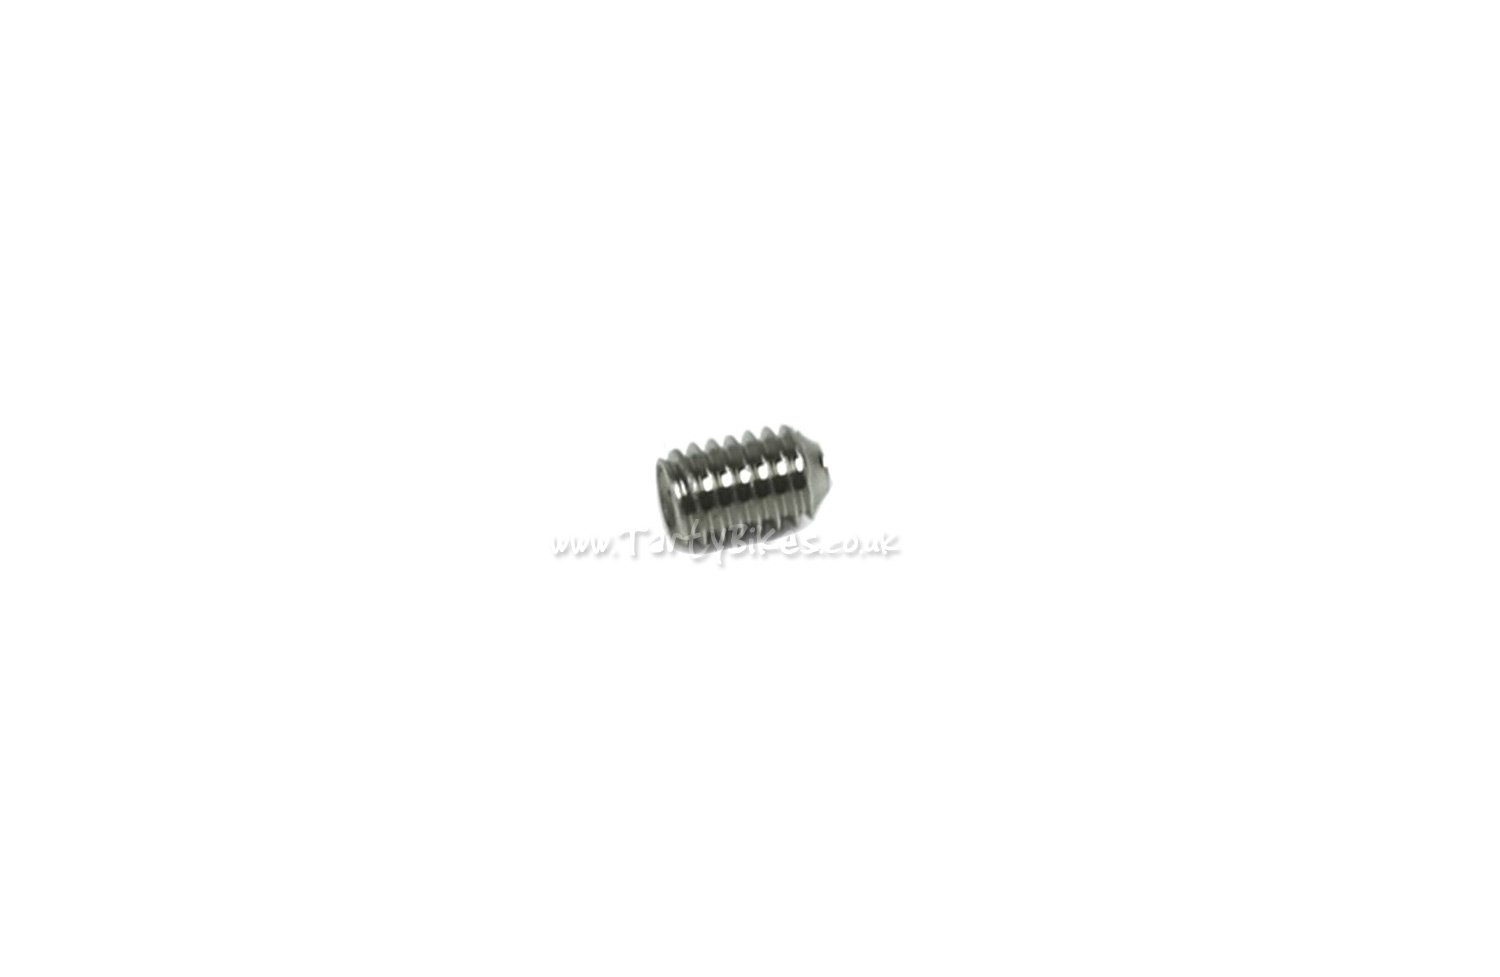 Hope Grub Screw Dog Point M4 x 5mm (HBSP230)